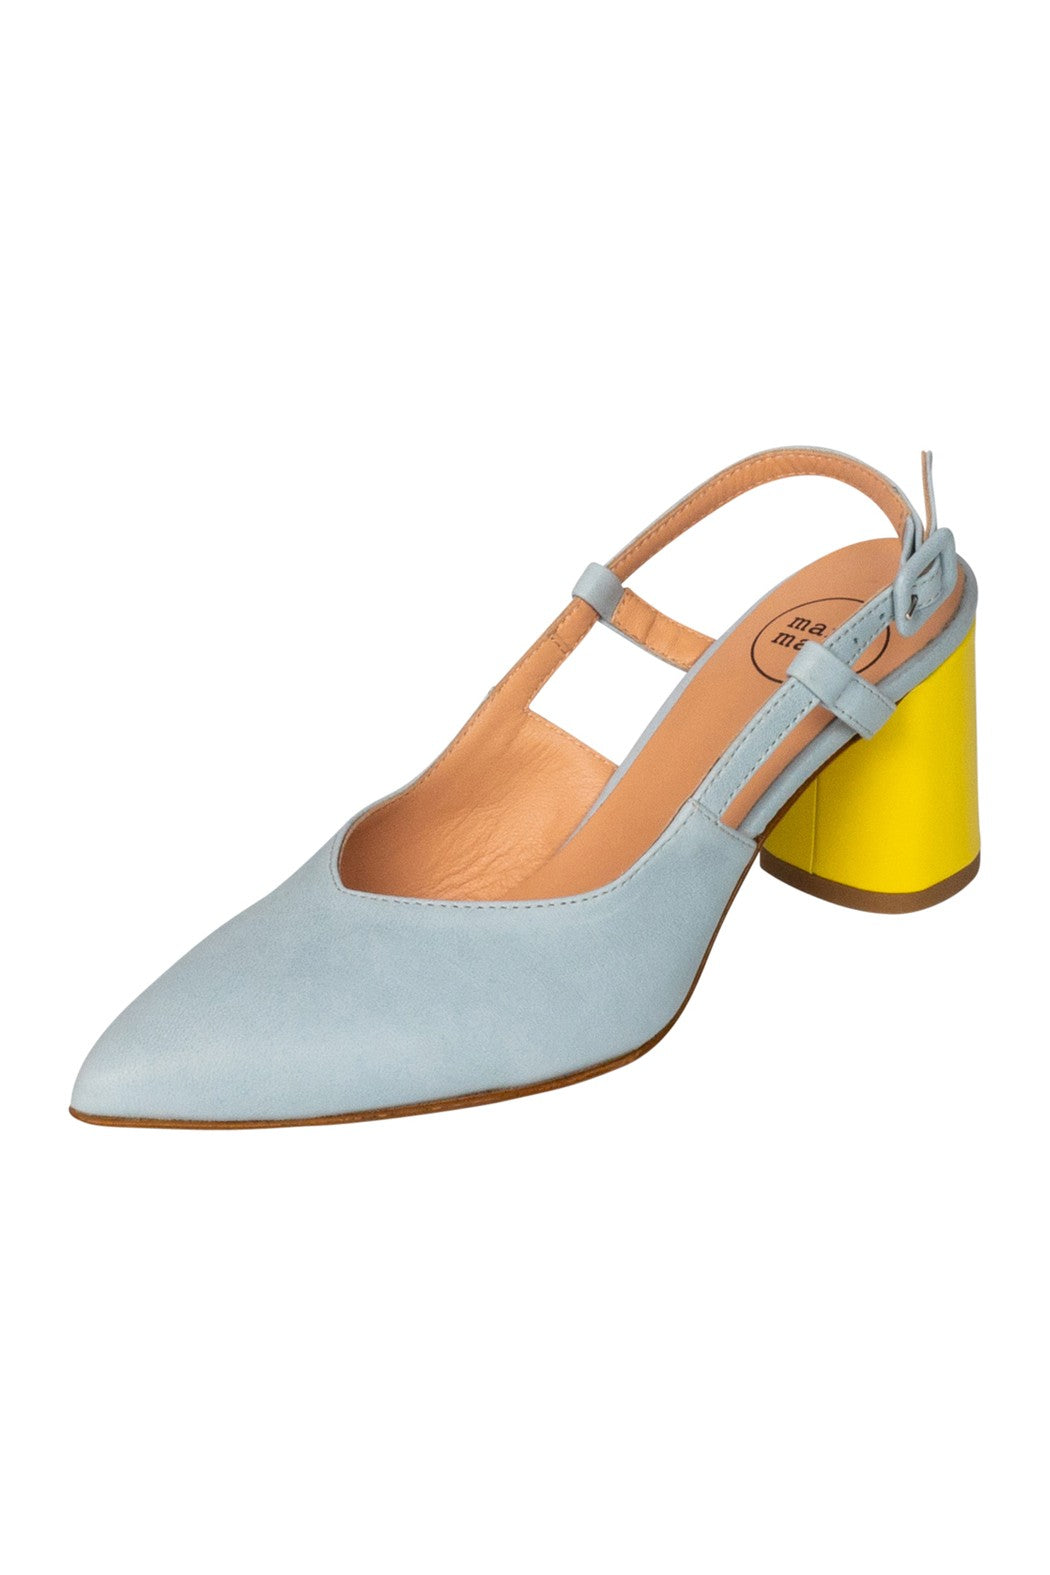 Italian leather sky blue and lemon sling back block high heel